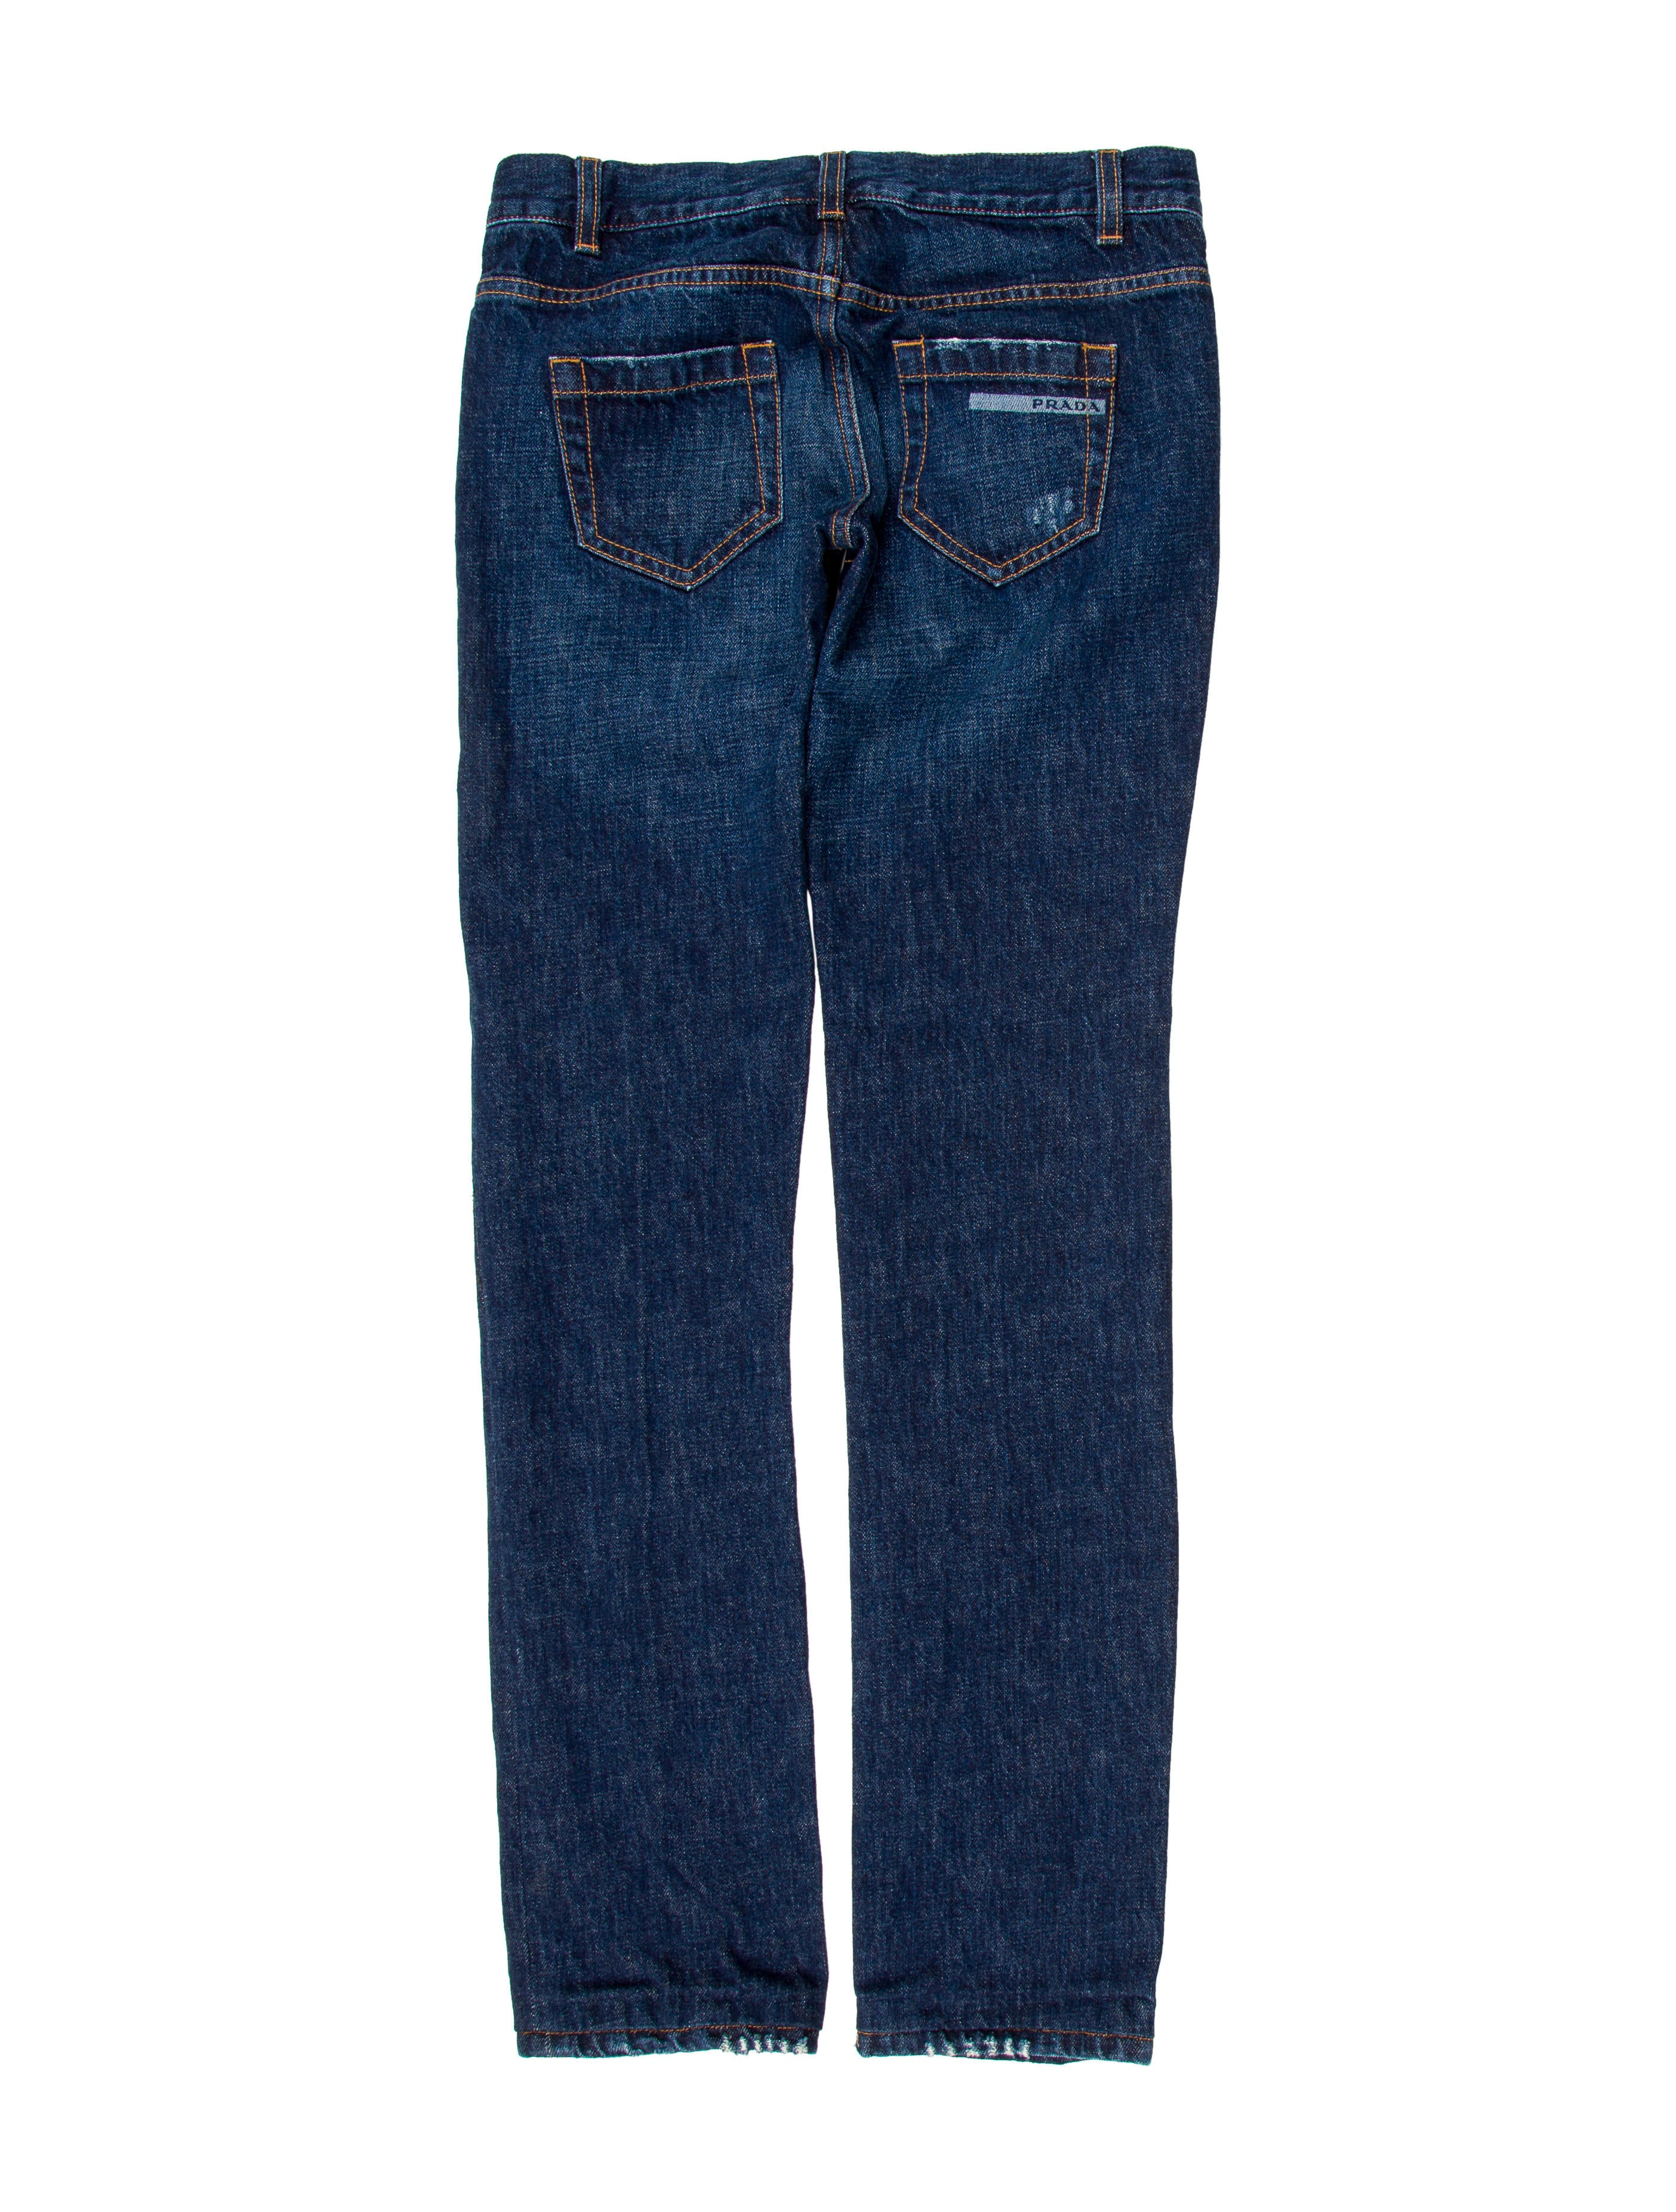 Free shipping BOTH ways on Jeans, Men, Slim Fit, Low Rise, from our vast selection of styles. Fast delivery, and 24/7/ real-person service with a smile. Click or call